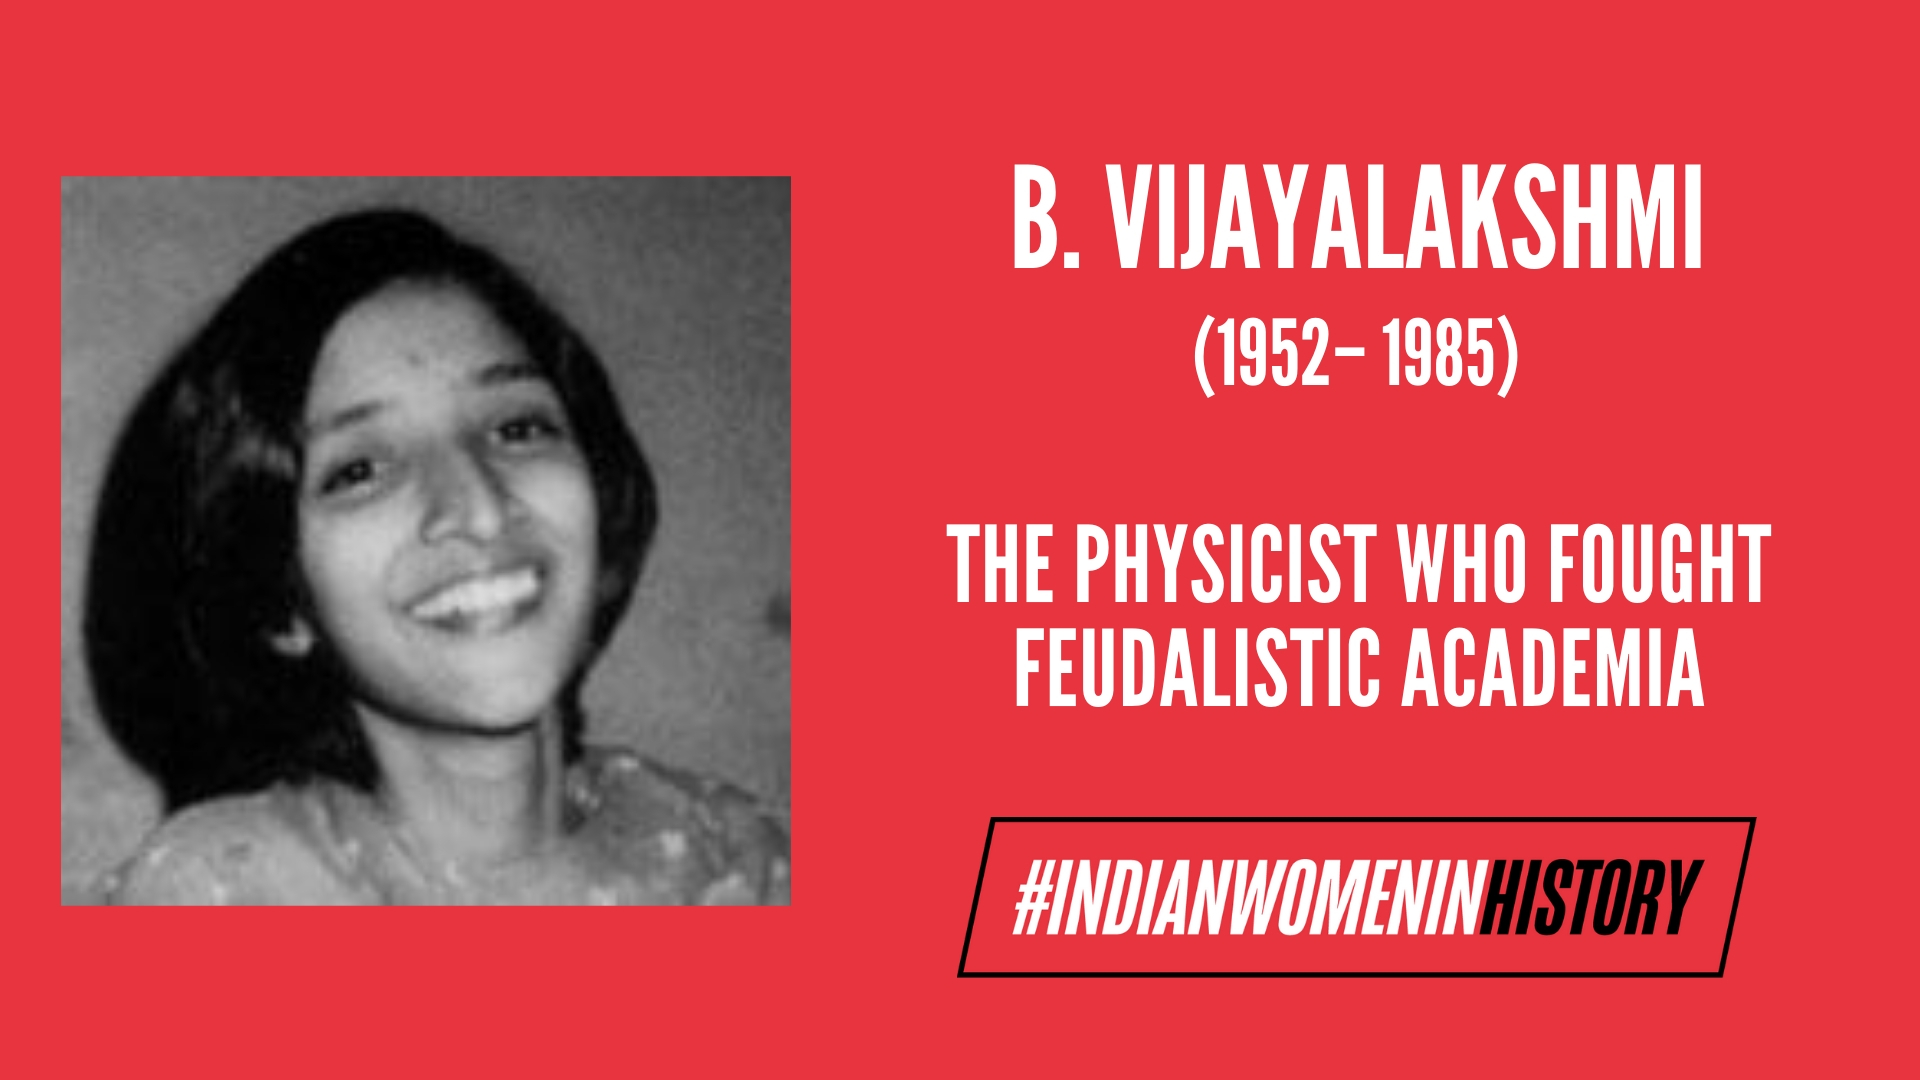 B. Vijayalakshmi: The Physicist Who Fought Feudalistic Academia| #IndianWomenInHistory